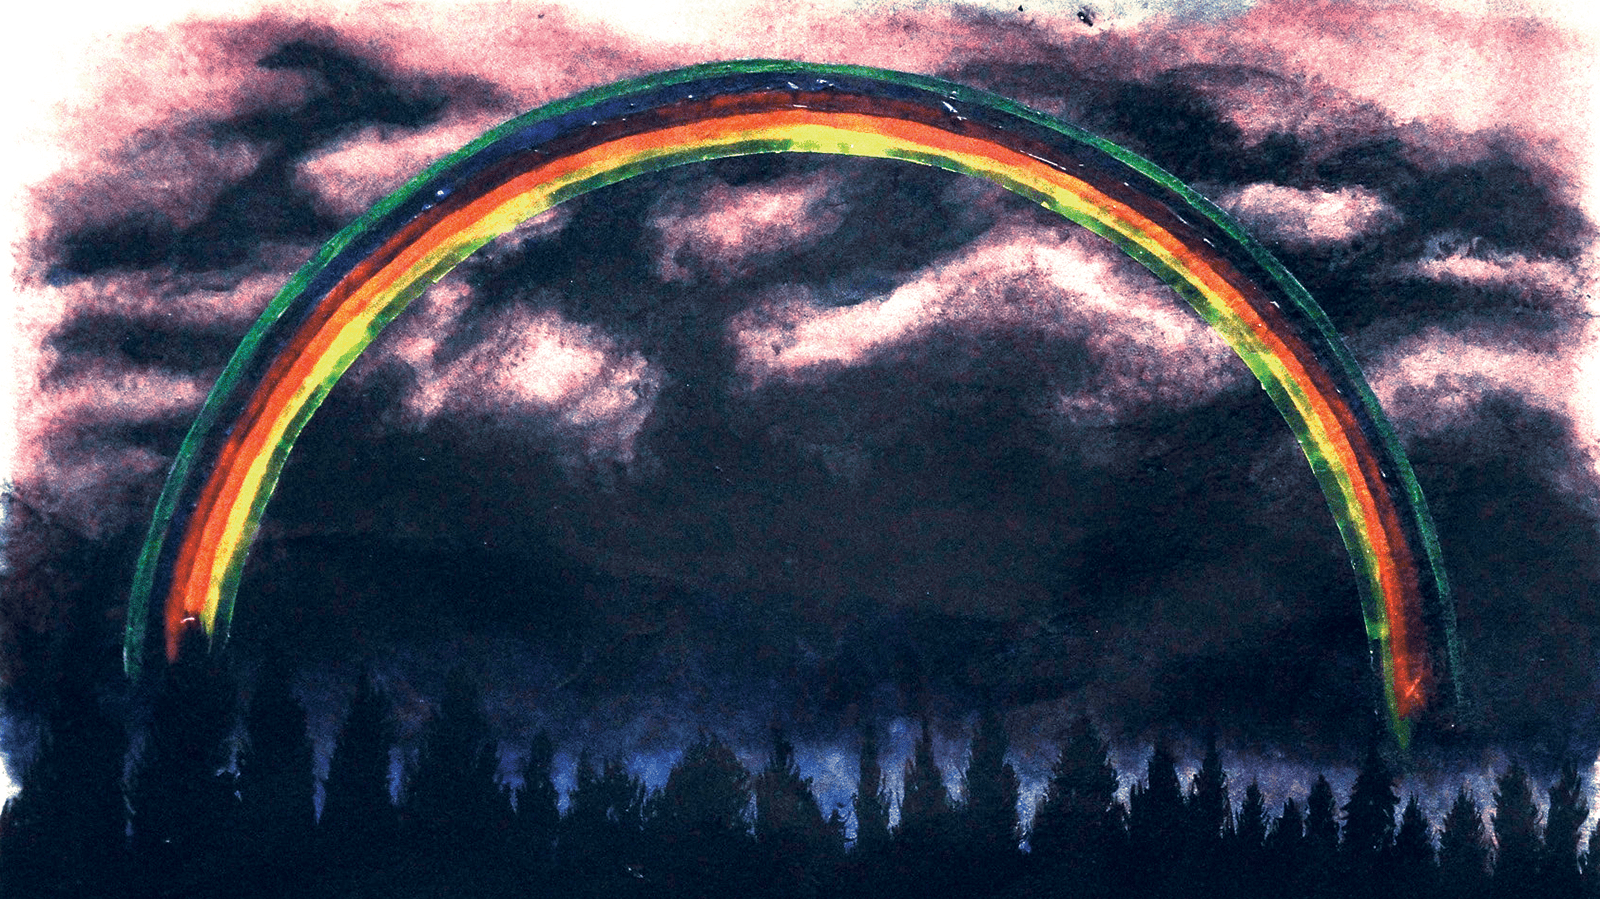 Moonbow by Mariano Oreamuno